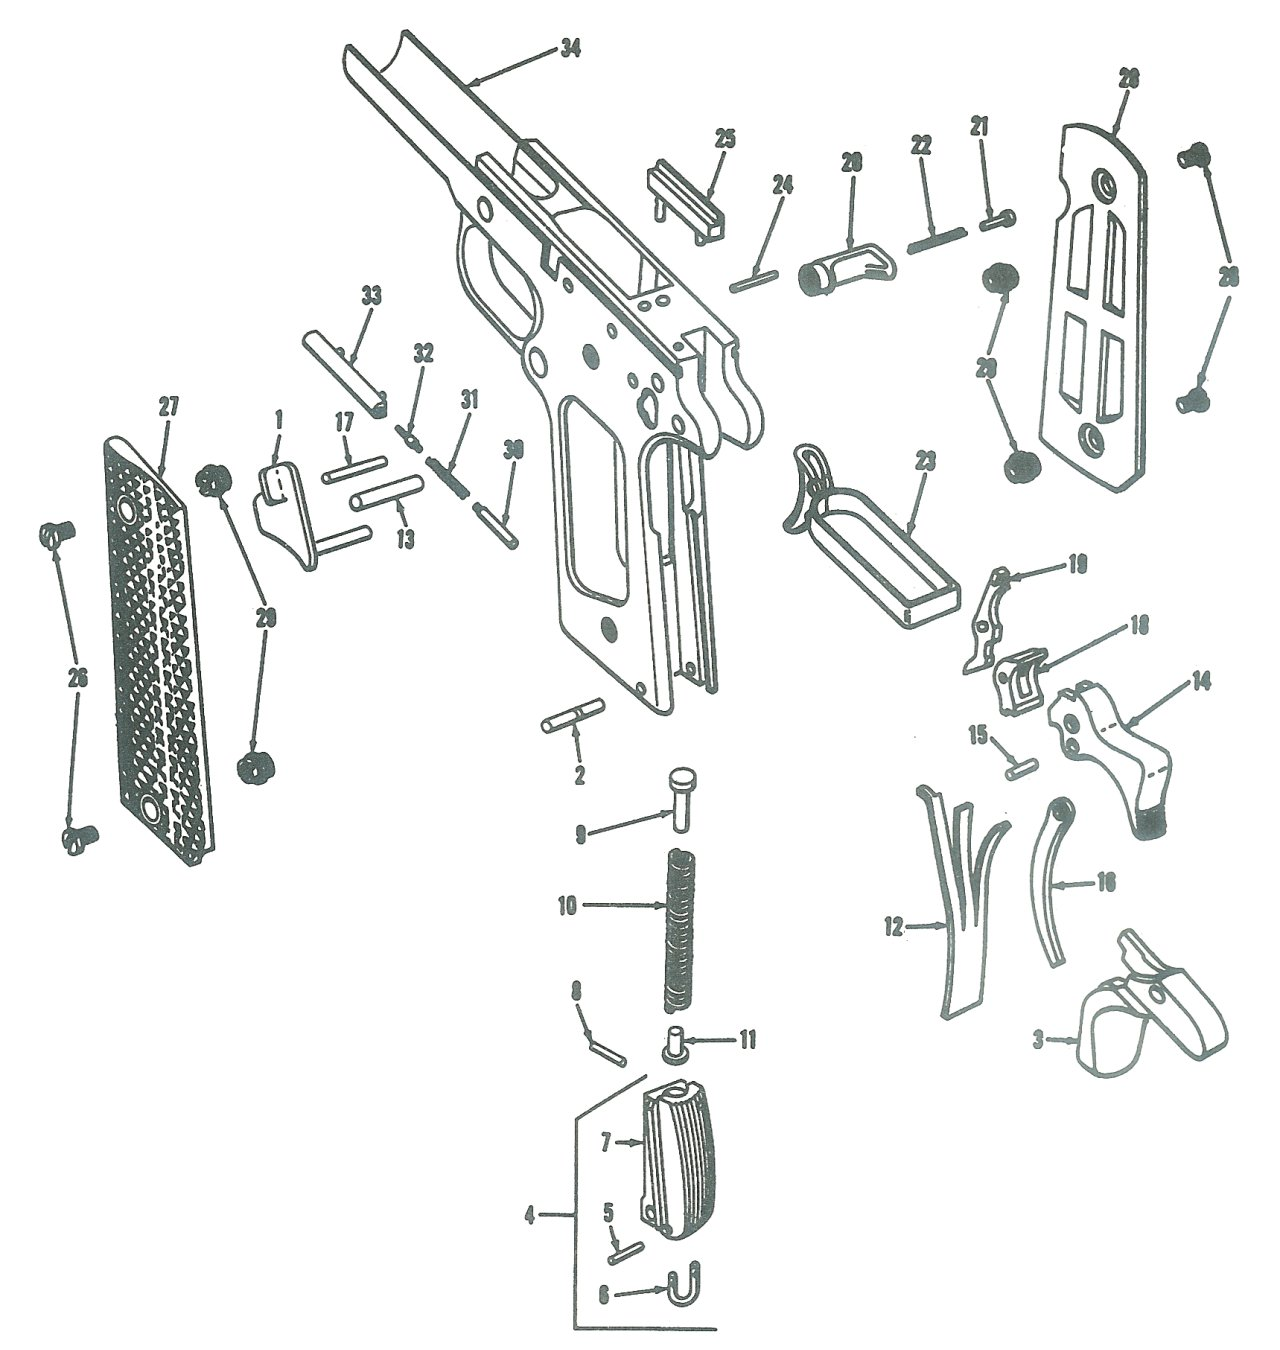 Pistol Exploded View